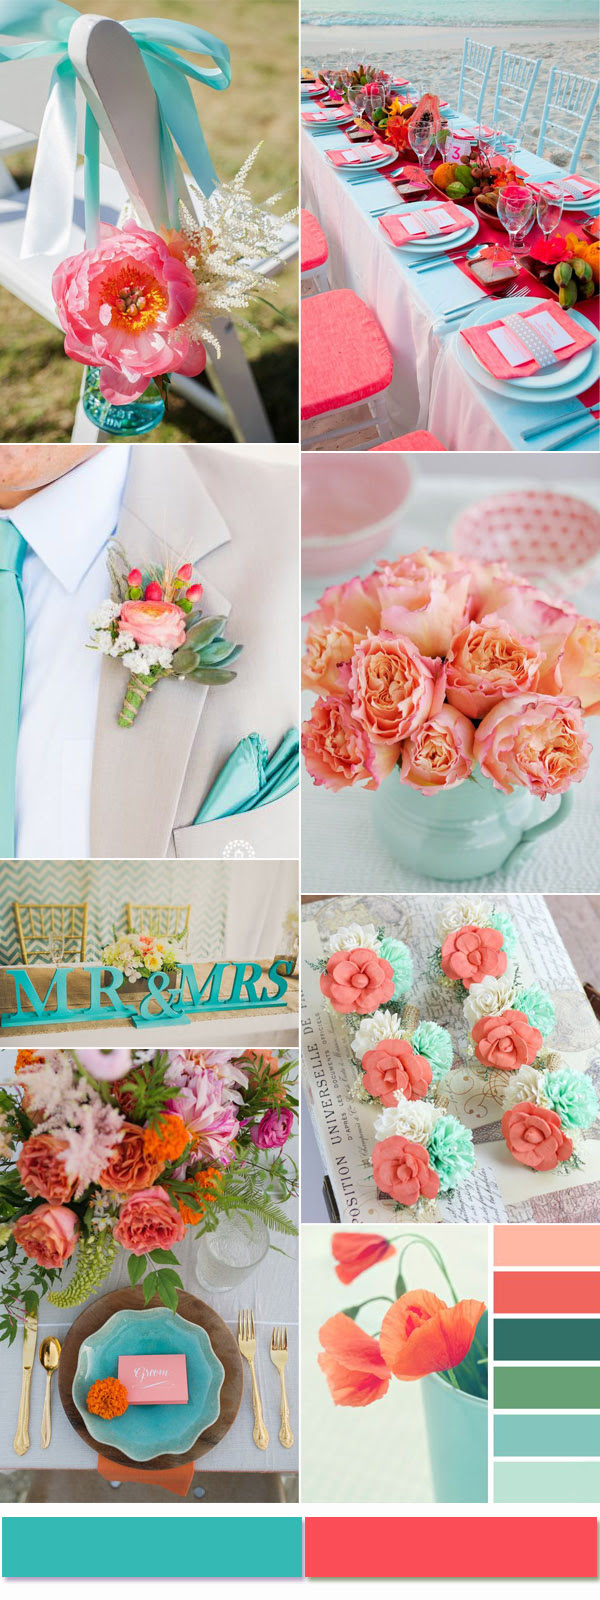 Turquoise And Coral Wedding Decorations